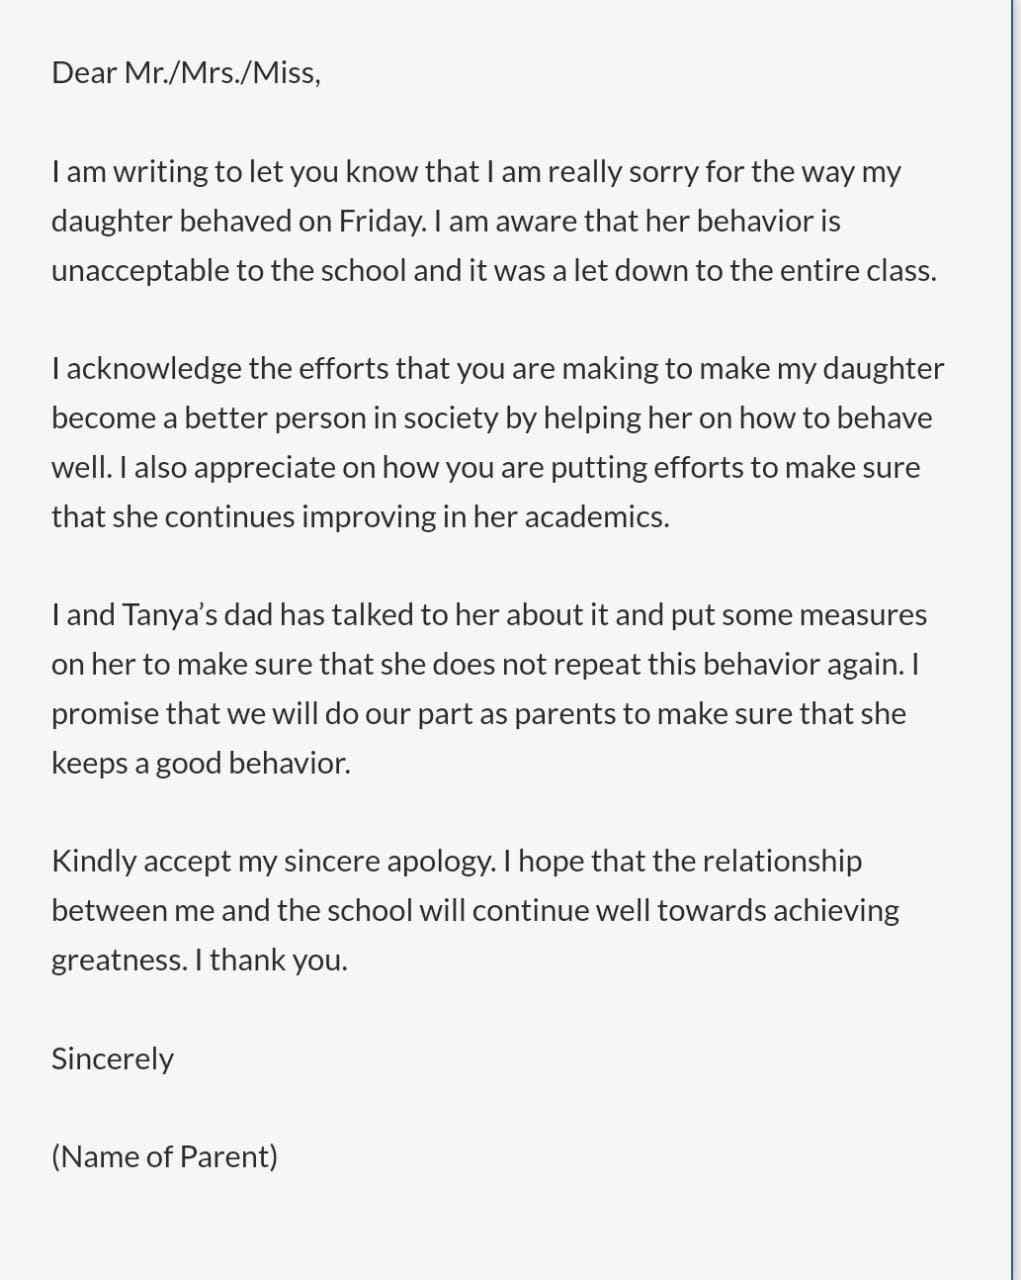 Apology Letter Format (Misbehavior from Parents)